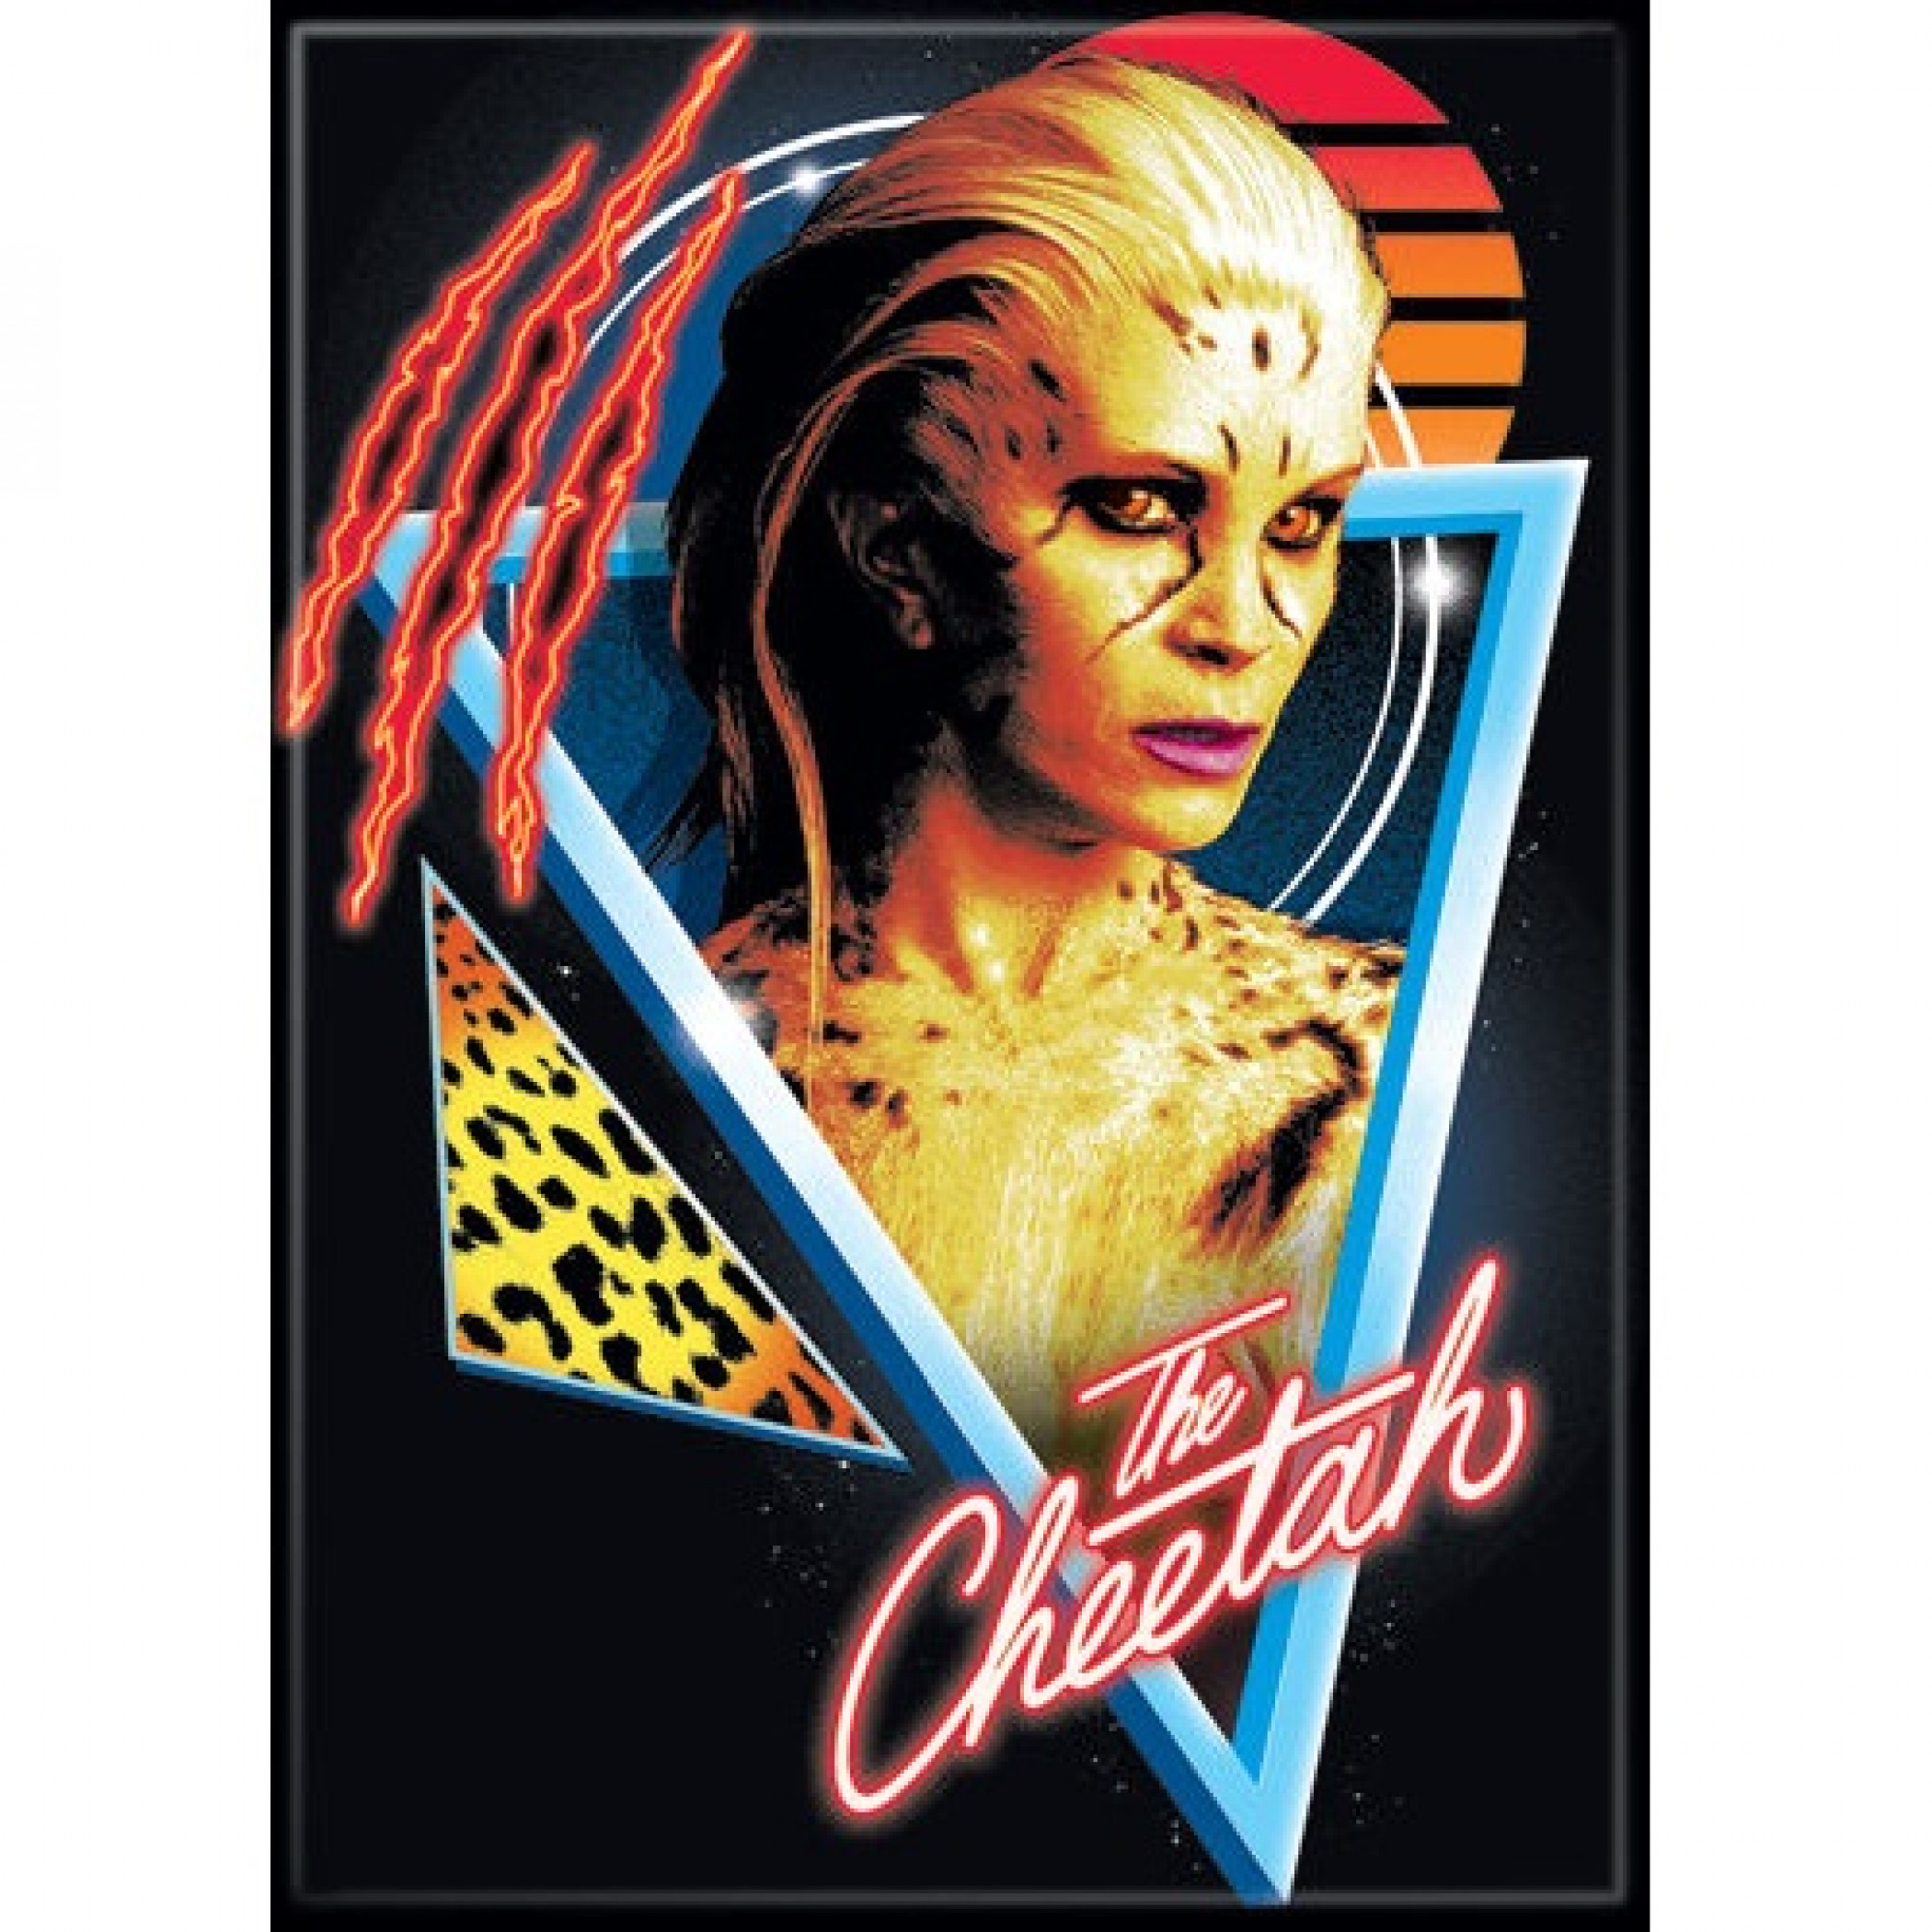 Wonder Woman 1984 The Cheetah Movie Poster Magnet